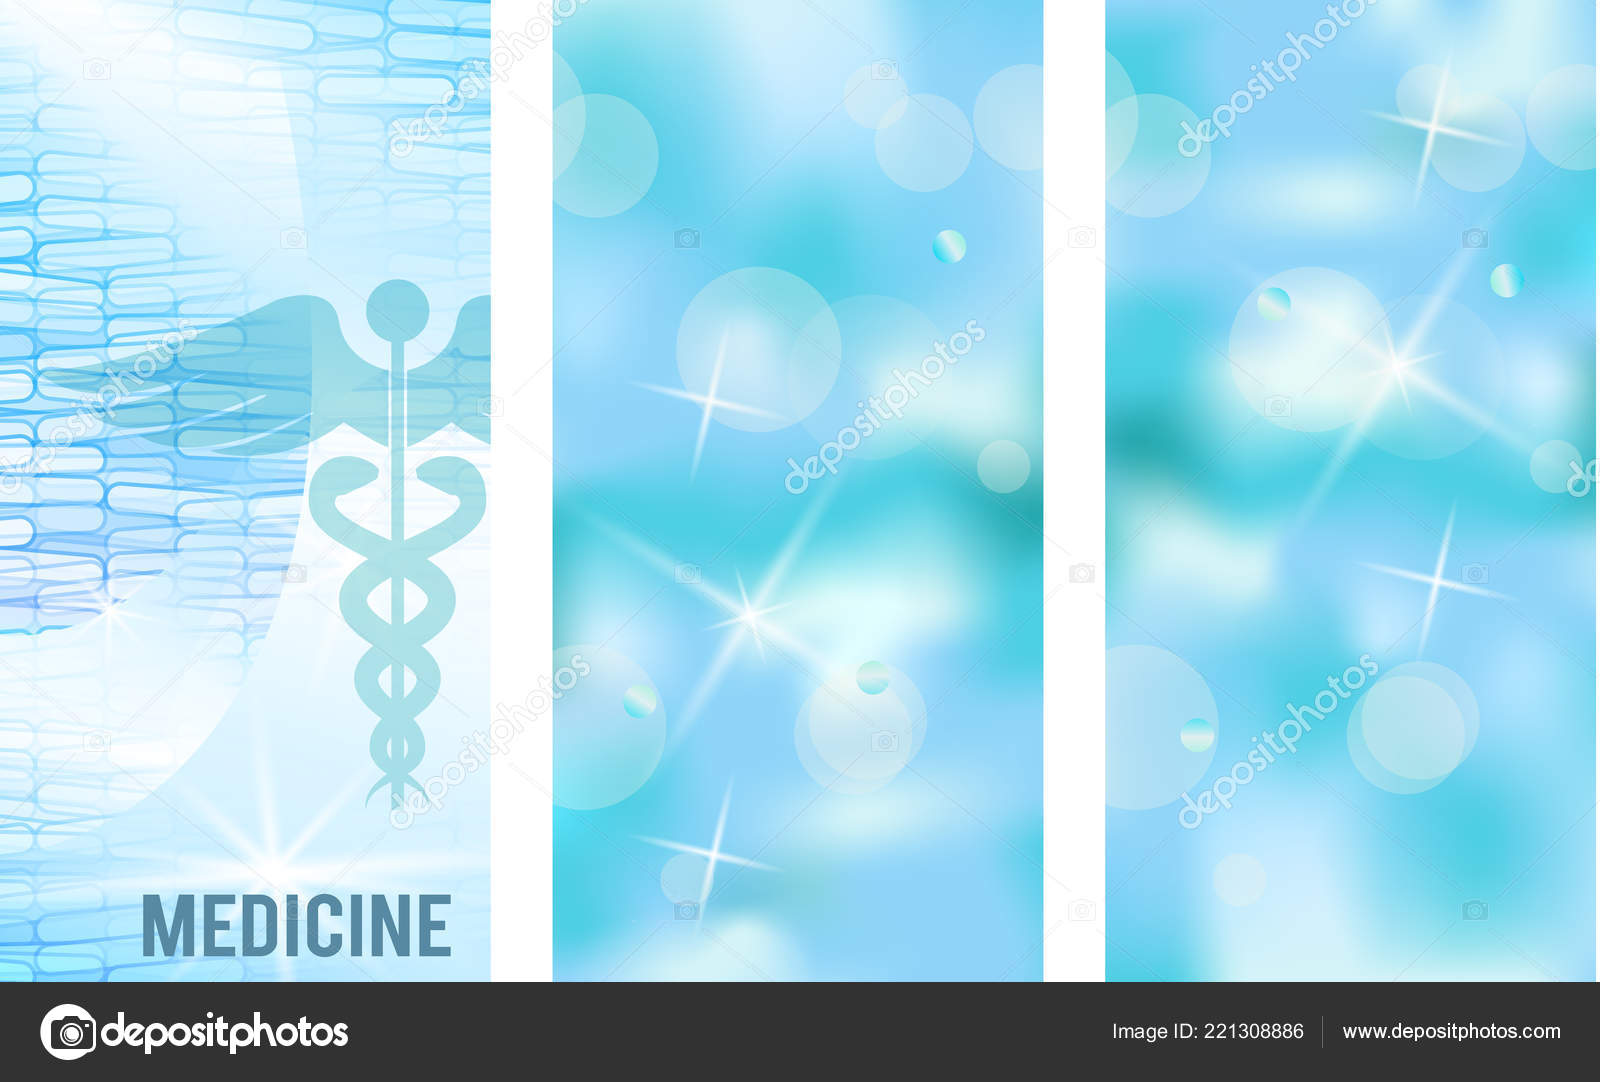 Download 870 Background Blue Health HD Gratis